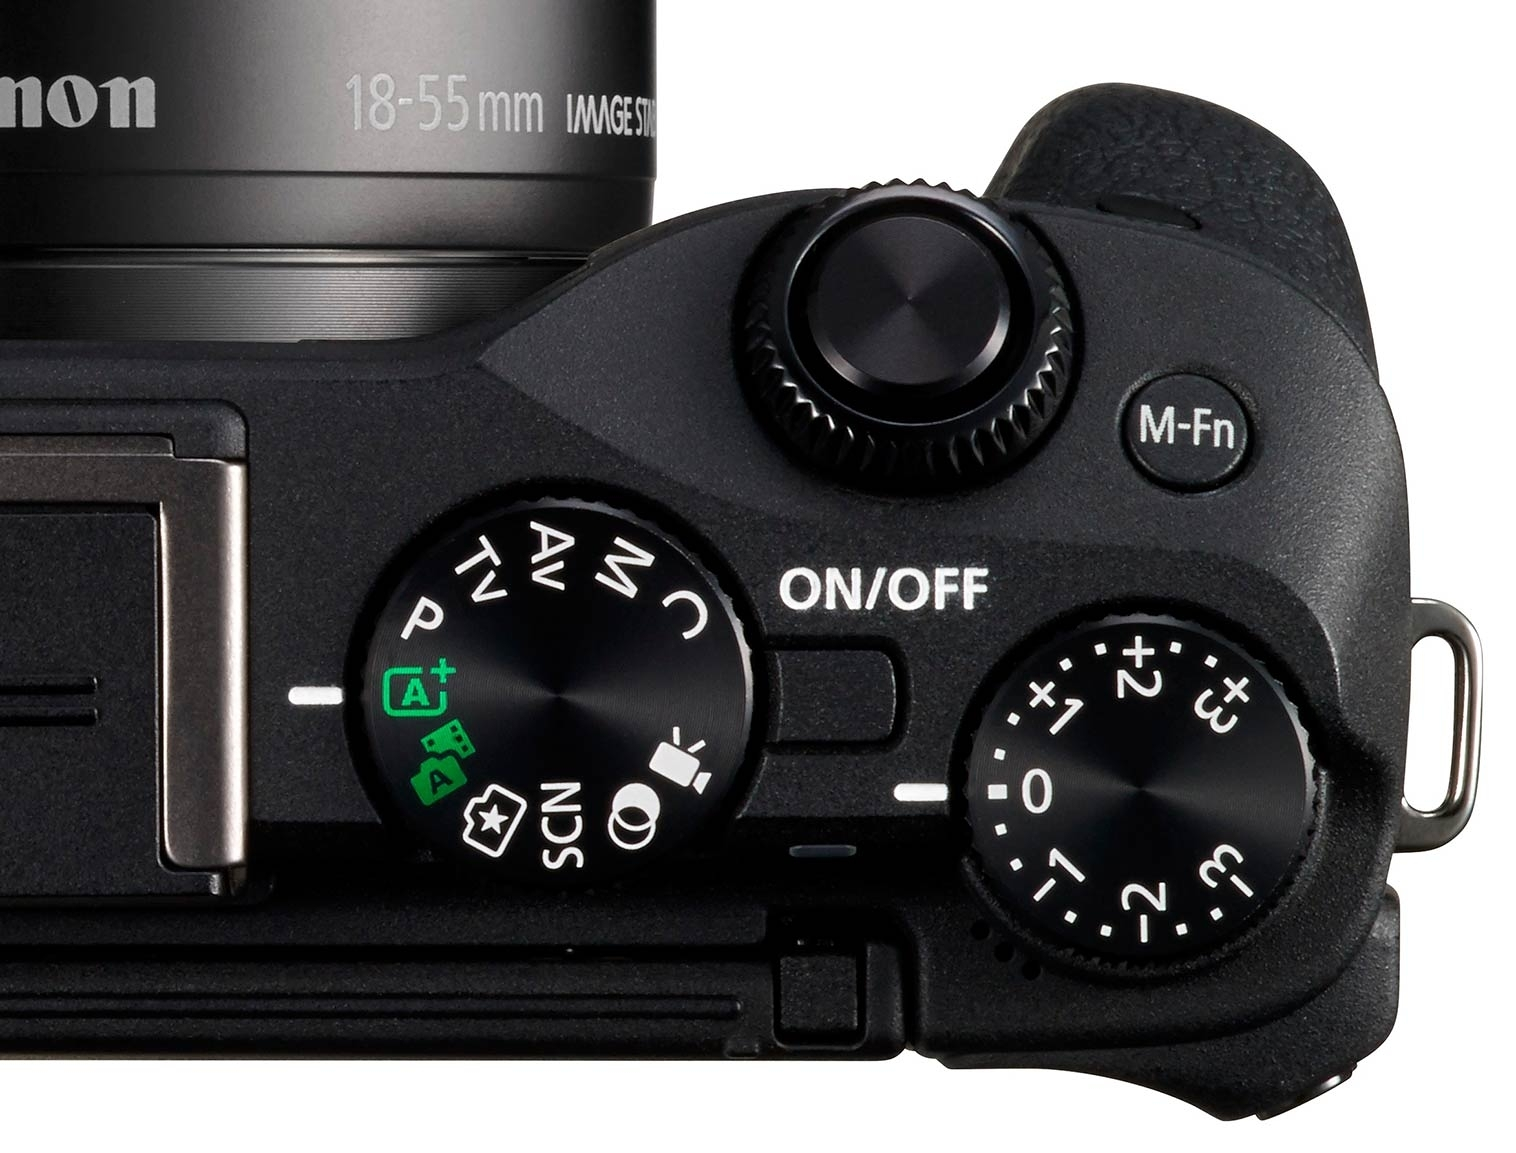 The handling is helped immensely by the thumb grip, the dials and buttons are classic Canon